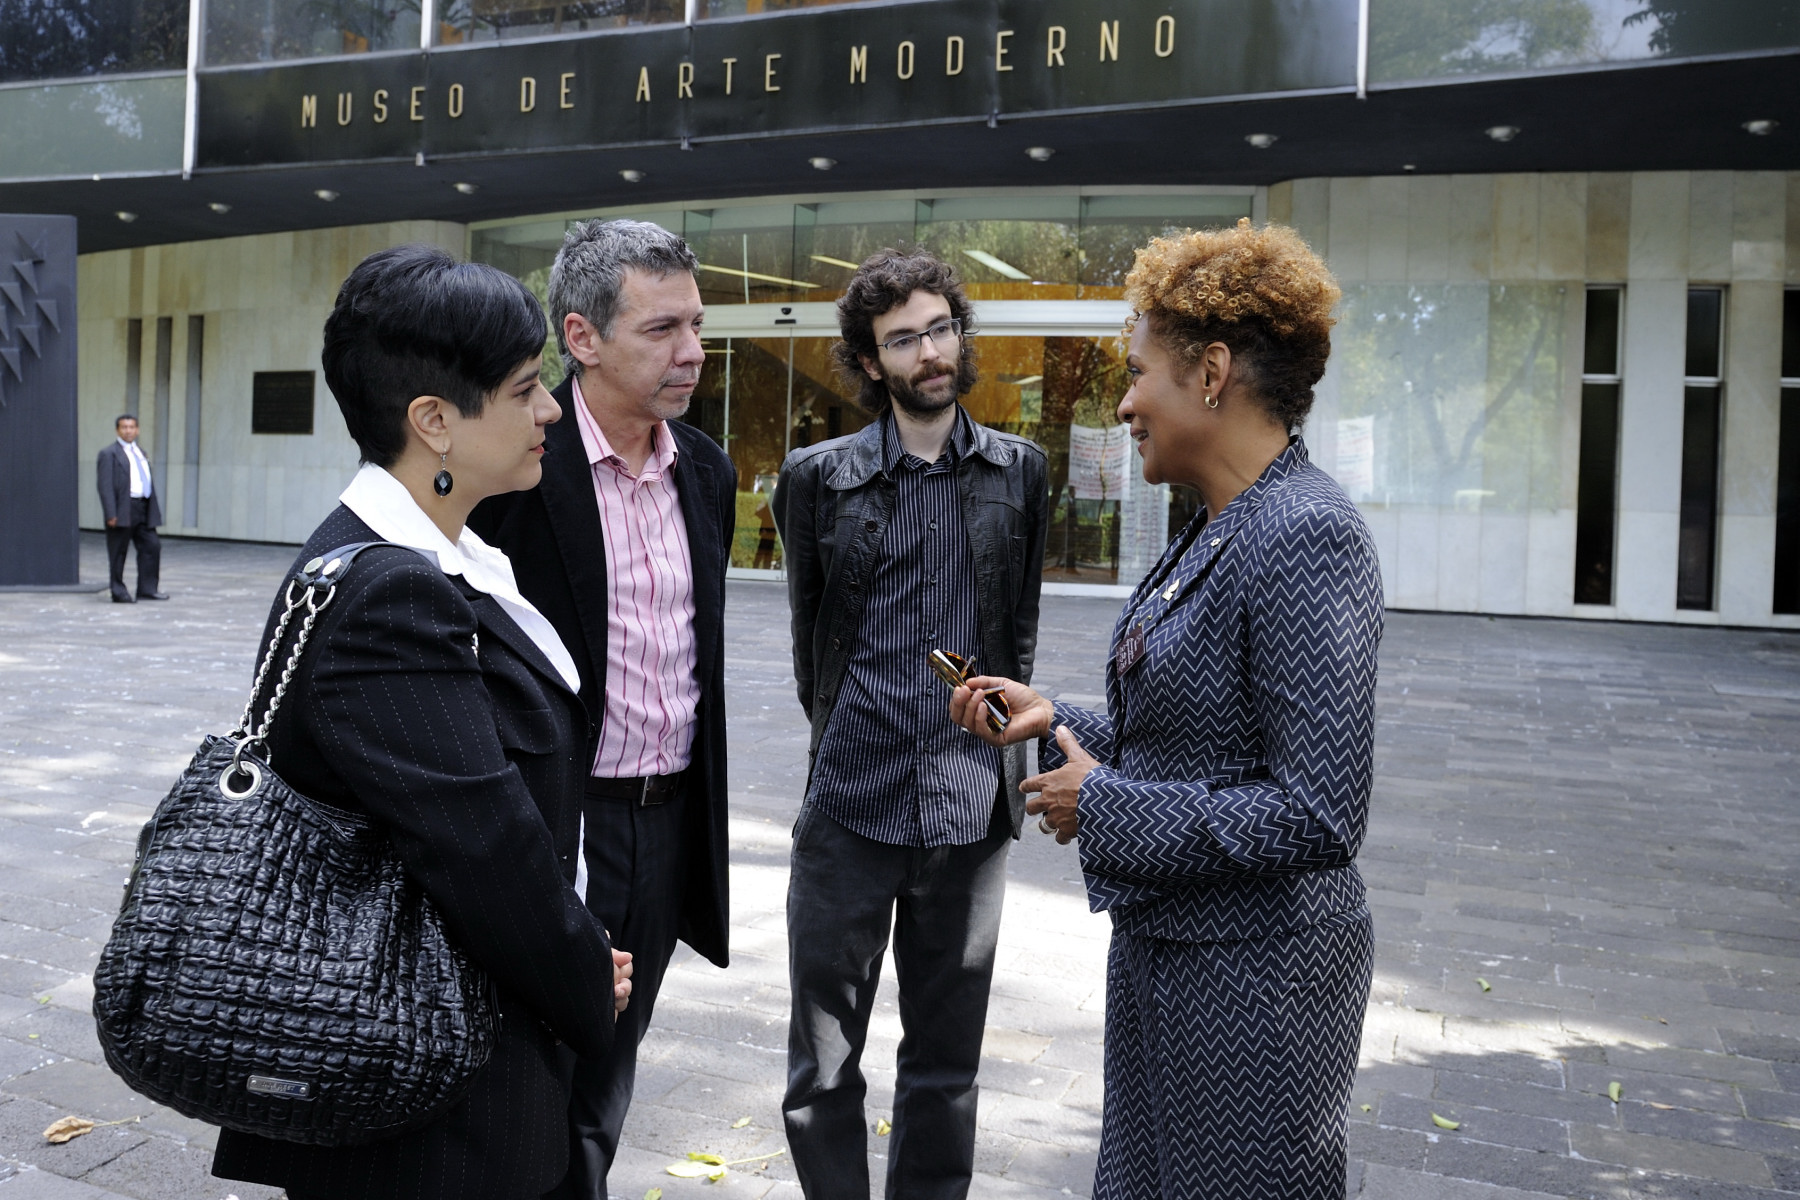 While in Mexico City, Their Excellencies the Right Honourable Michaëlle Jean, Governor General of Canada, and Mr. Jean-Daniel Lafond visited the Museum of Modern Art. Upon her arrival, the Governor General was greeted by Mr. Osvaldo Sanchez (left) and Mr. Inaki Herran (right).